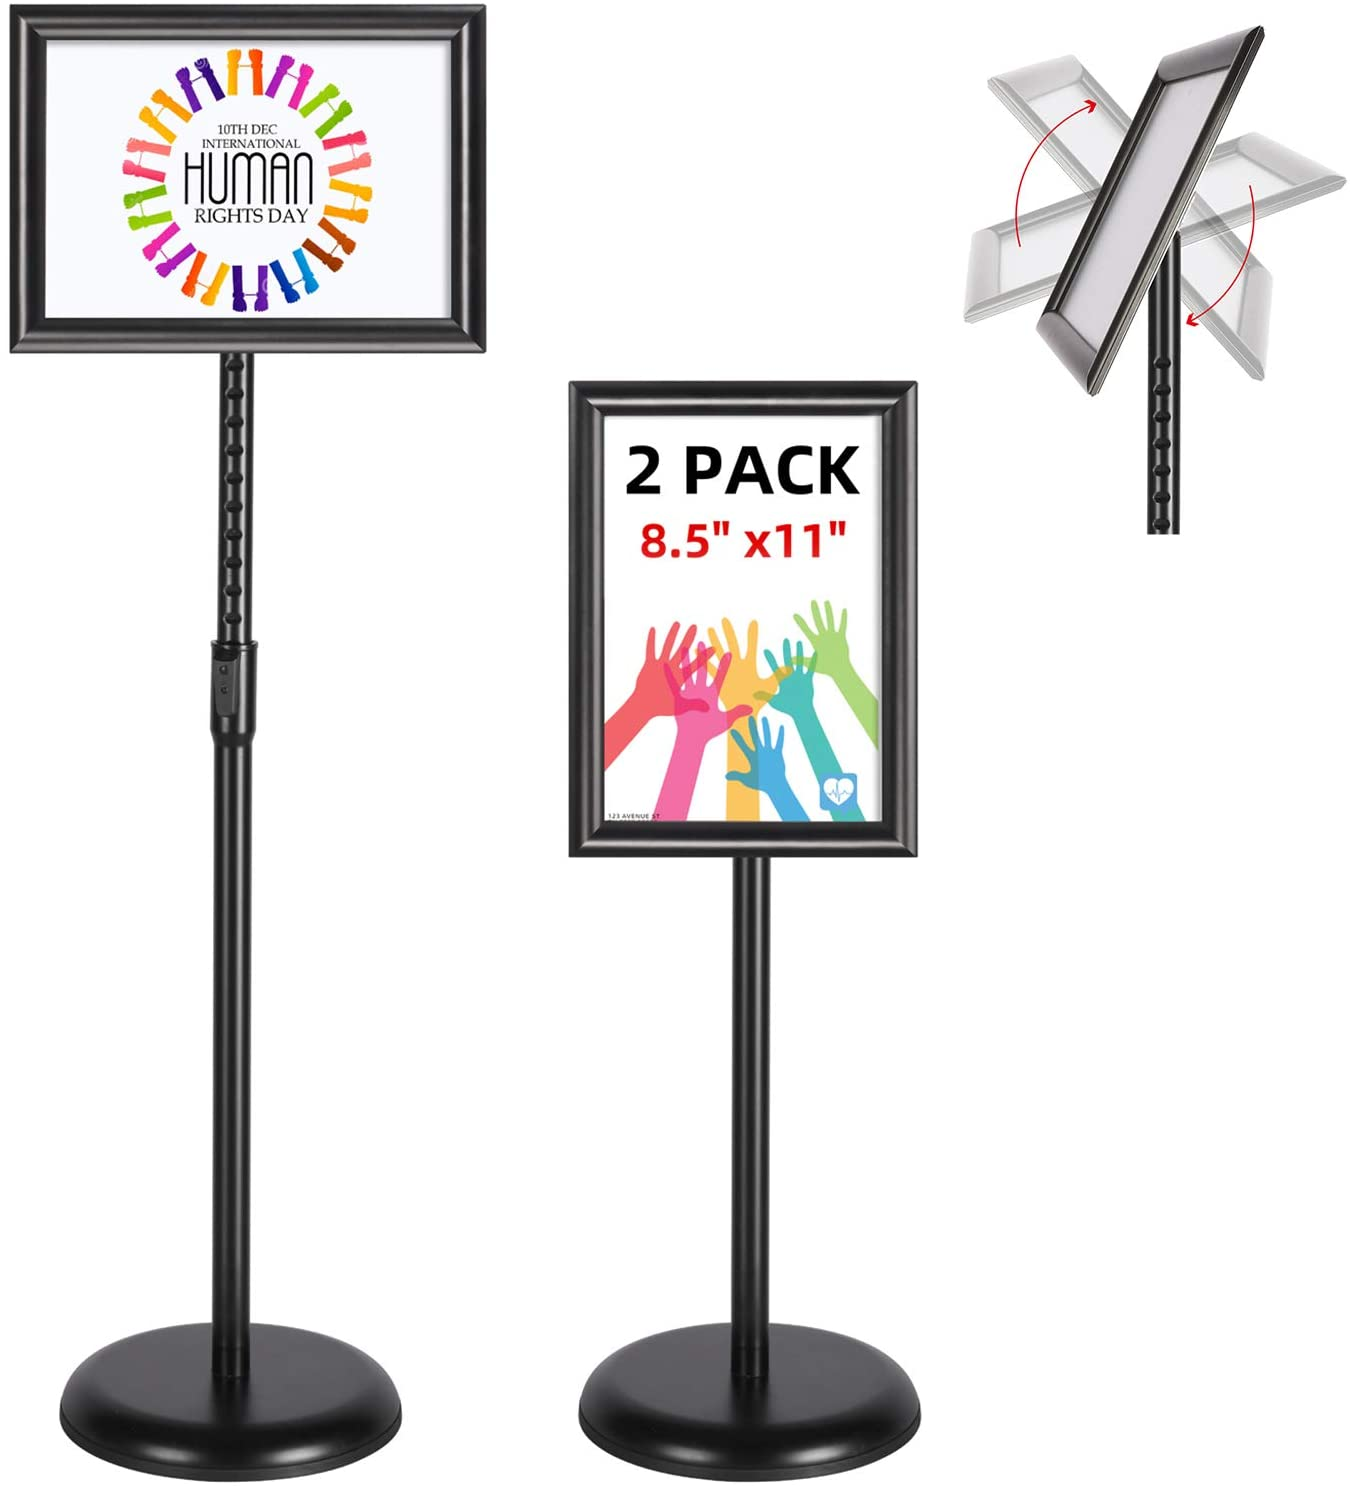 T-SIGN Adjustable Pedestal Poster Stand Aluminum Snap Open Frame for 8.5 x 11 Inch, Vertical and Horizontal View Sign Displayed, Black 2 Pack, Round Base